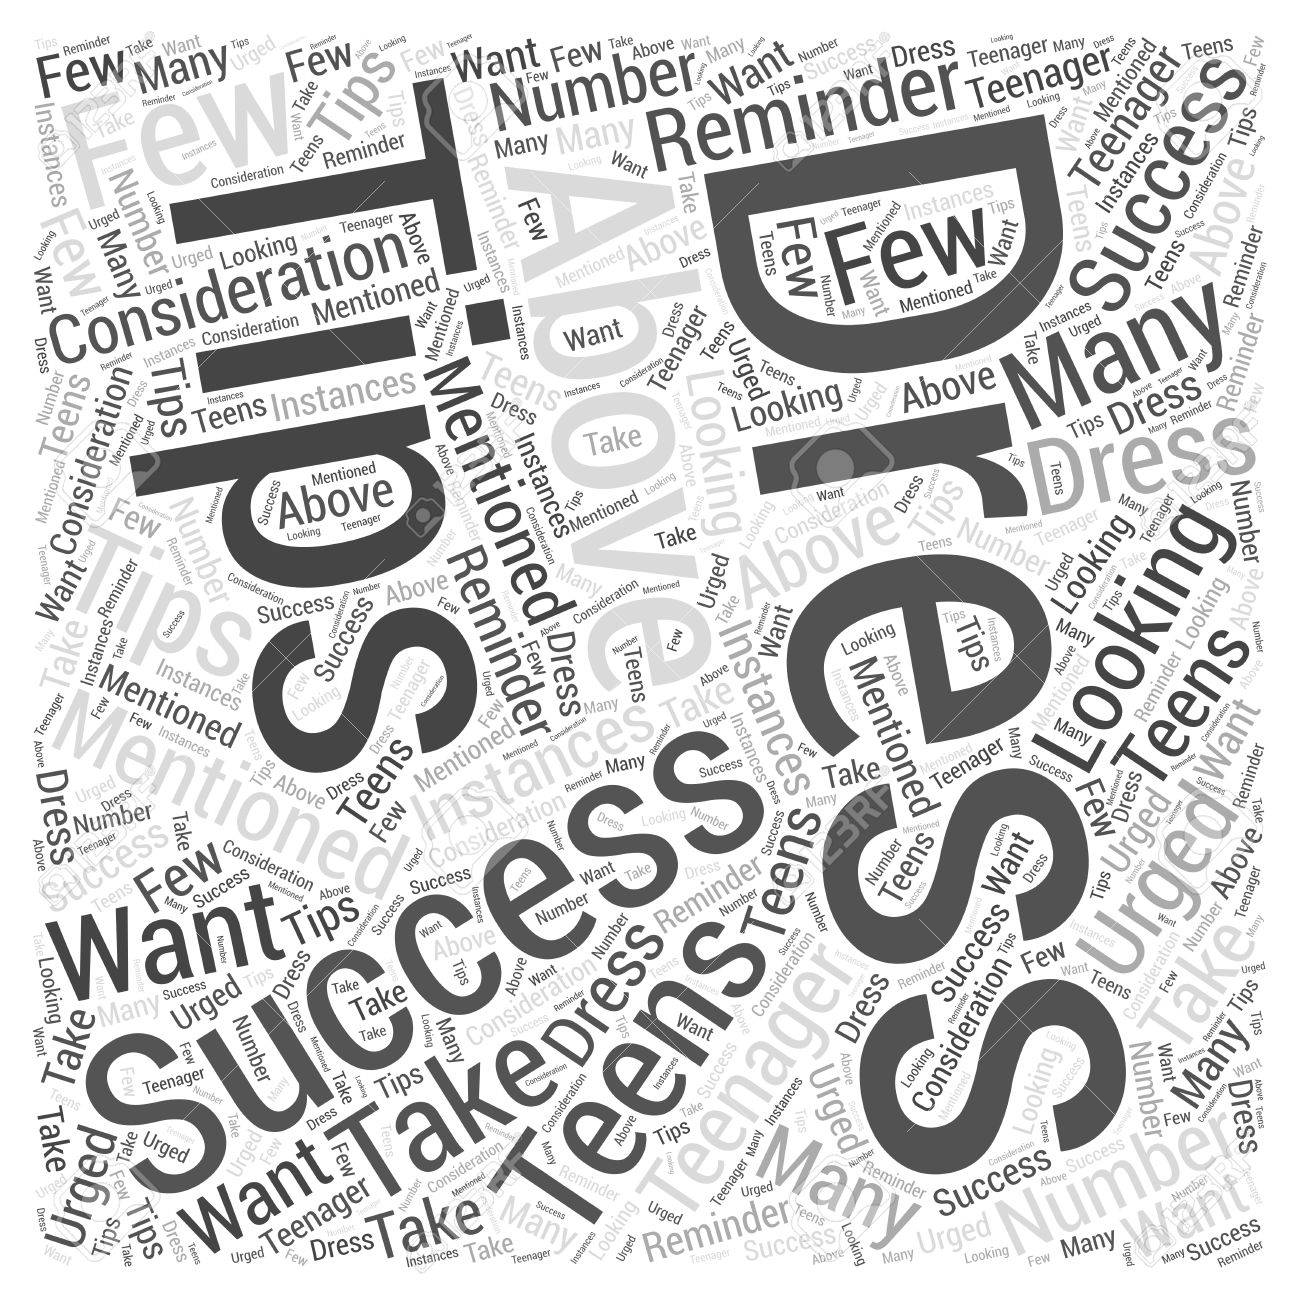 Dress for Success Tips for Teens Word Cloud Concept.